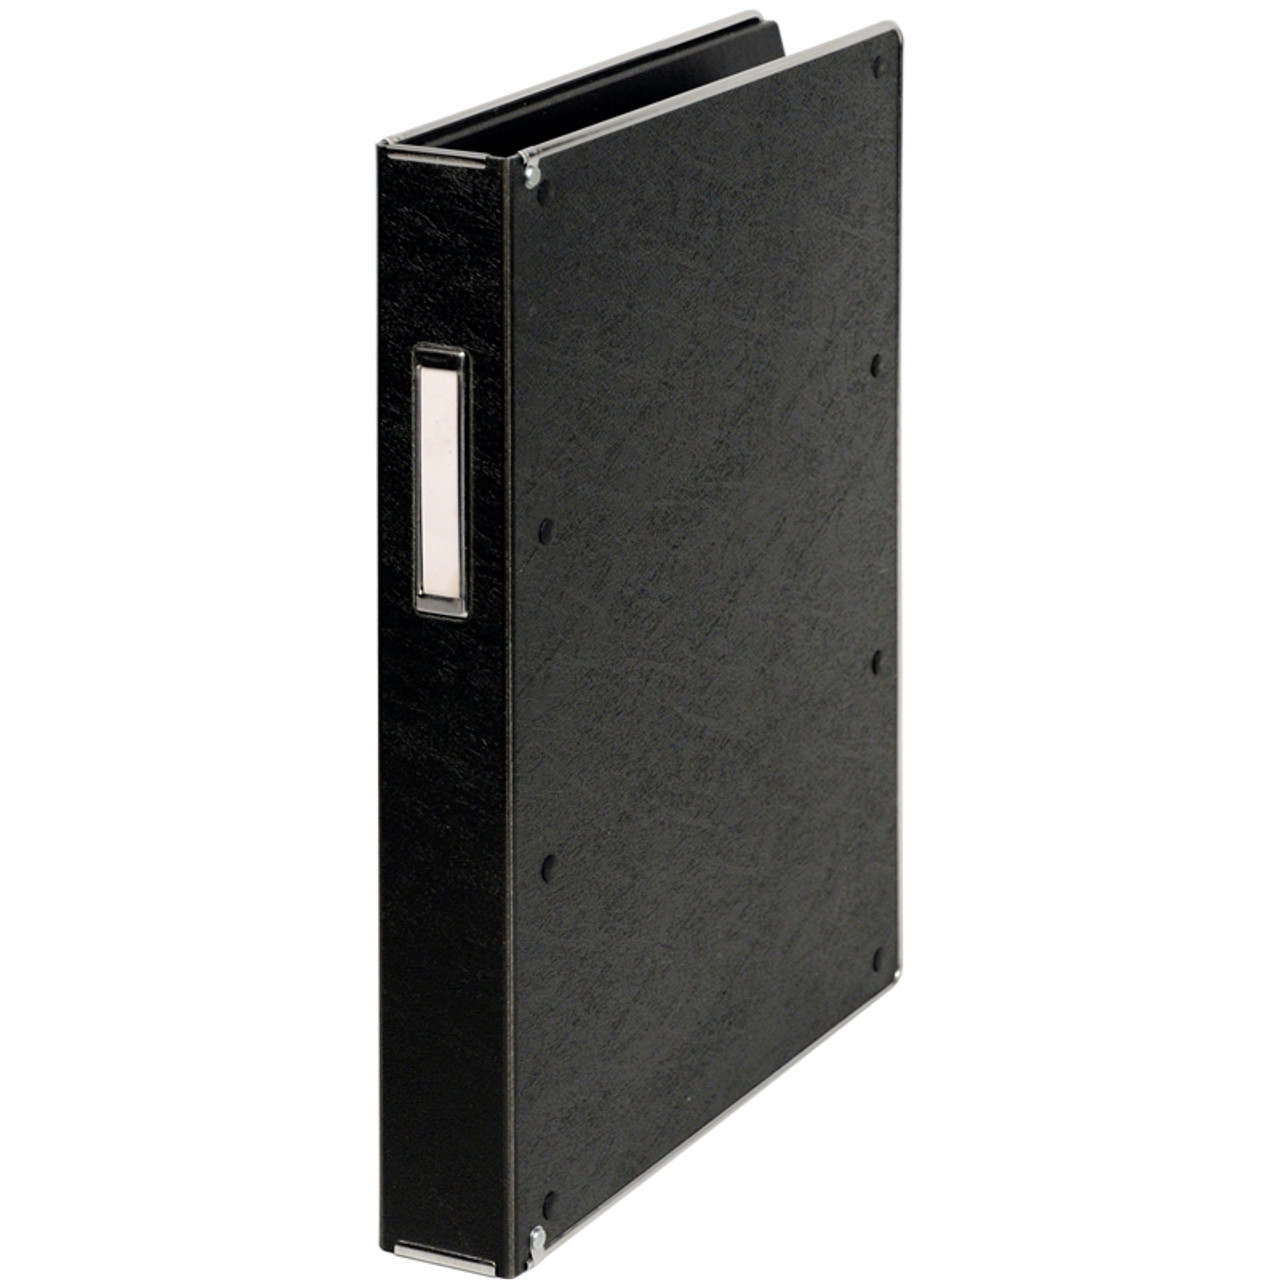 "Record Book-8550-Record Book Dual Hinge For 8"" x 5"" Forms-50 Pockets"